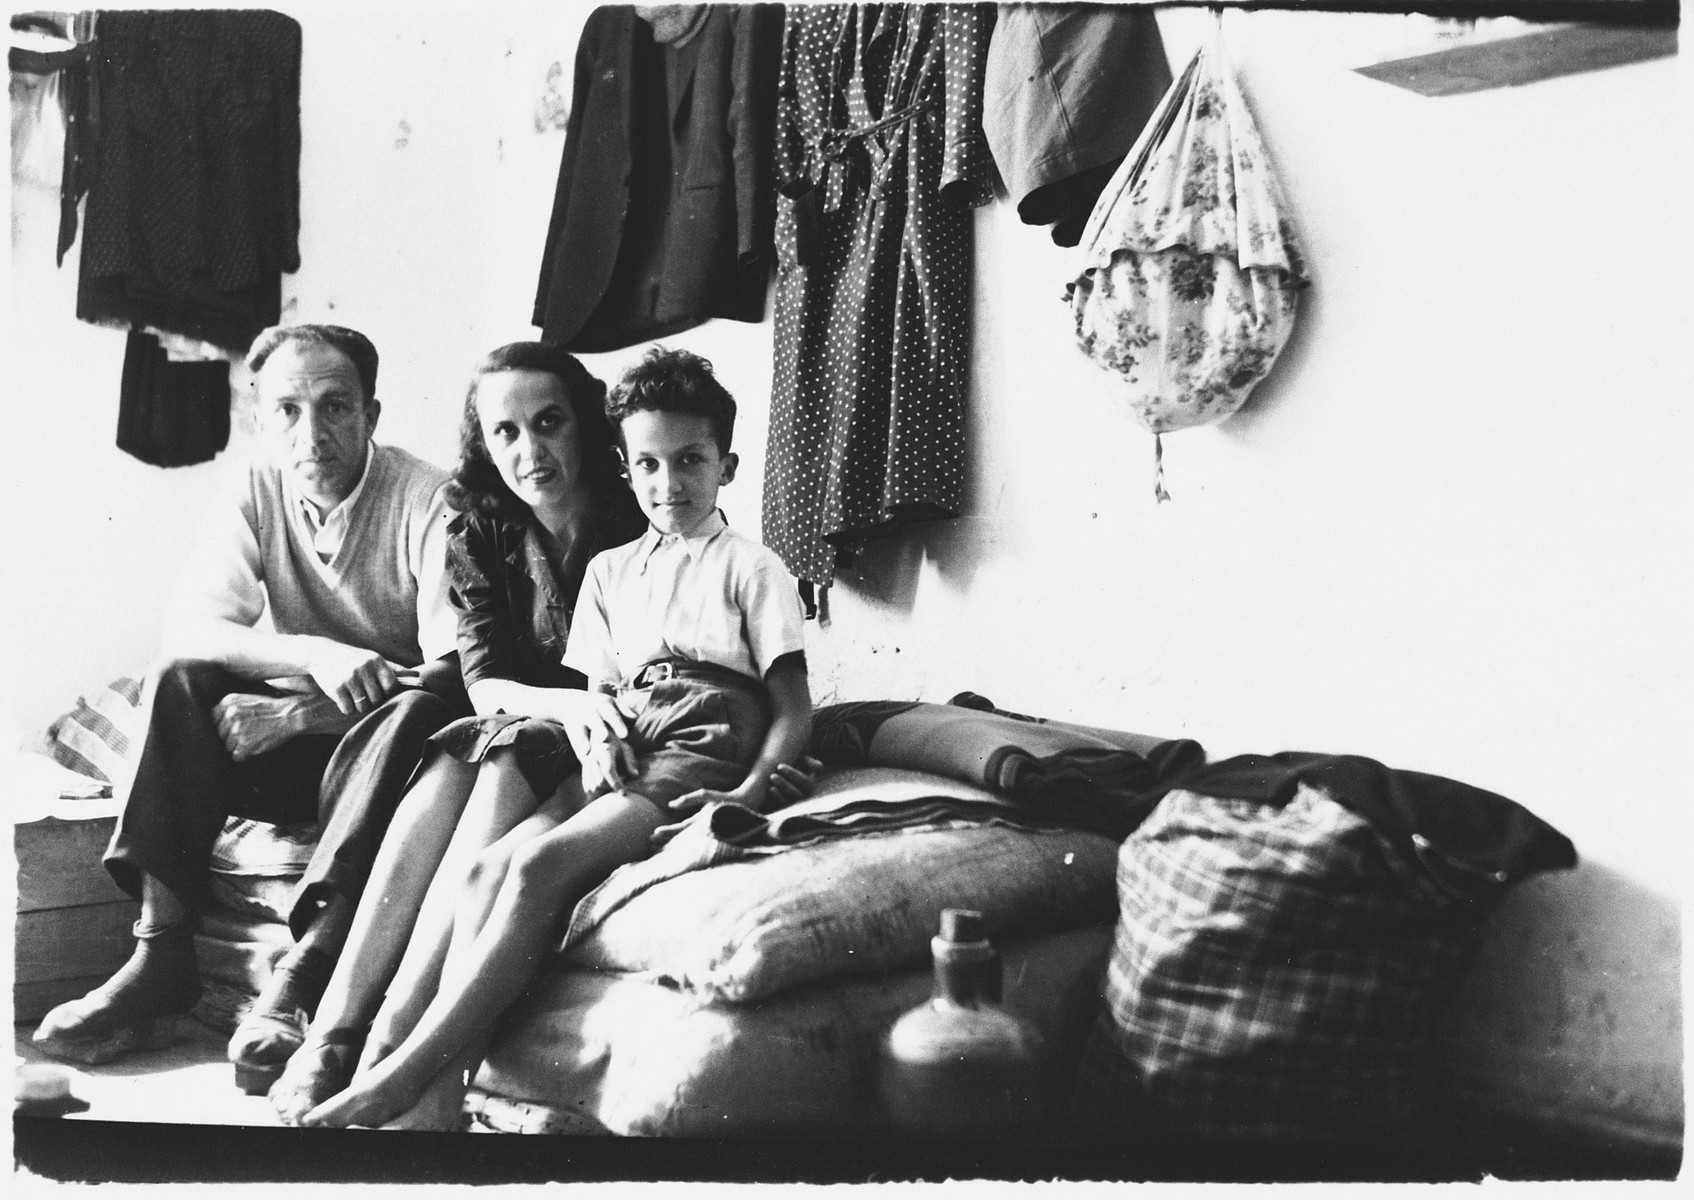 A Jewish family living in a prison cell in Italian-occupied Pristina.  Pictured are Majer and Mimi Altarac with their son Jasa.